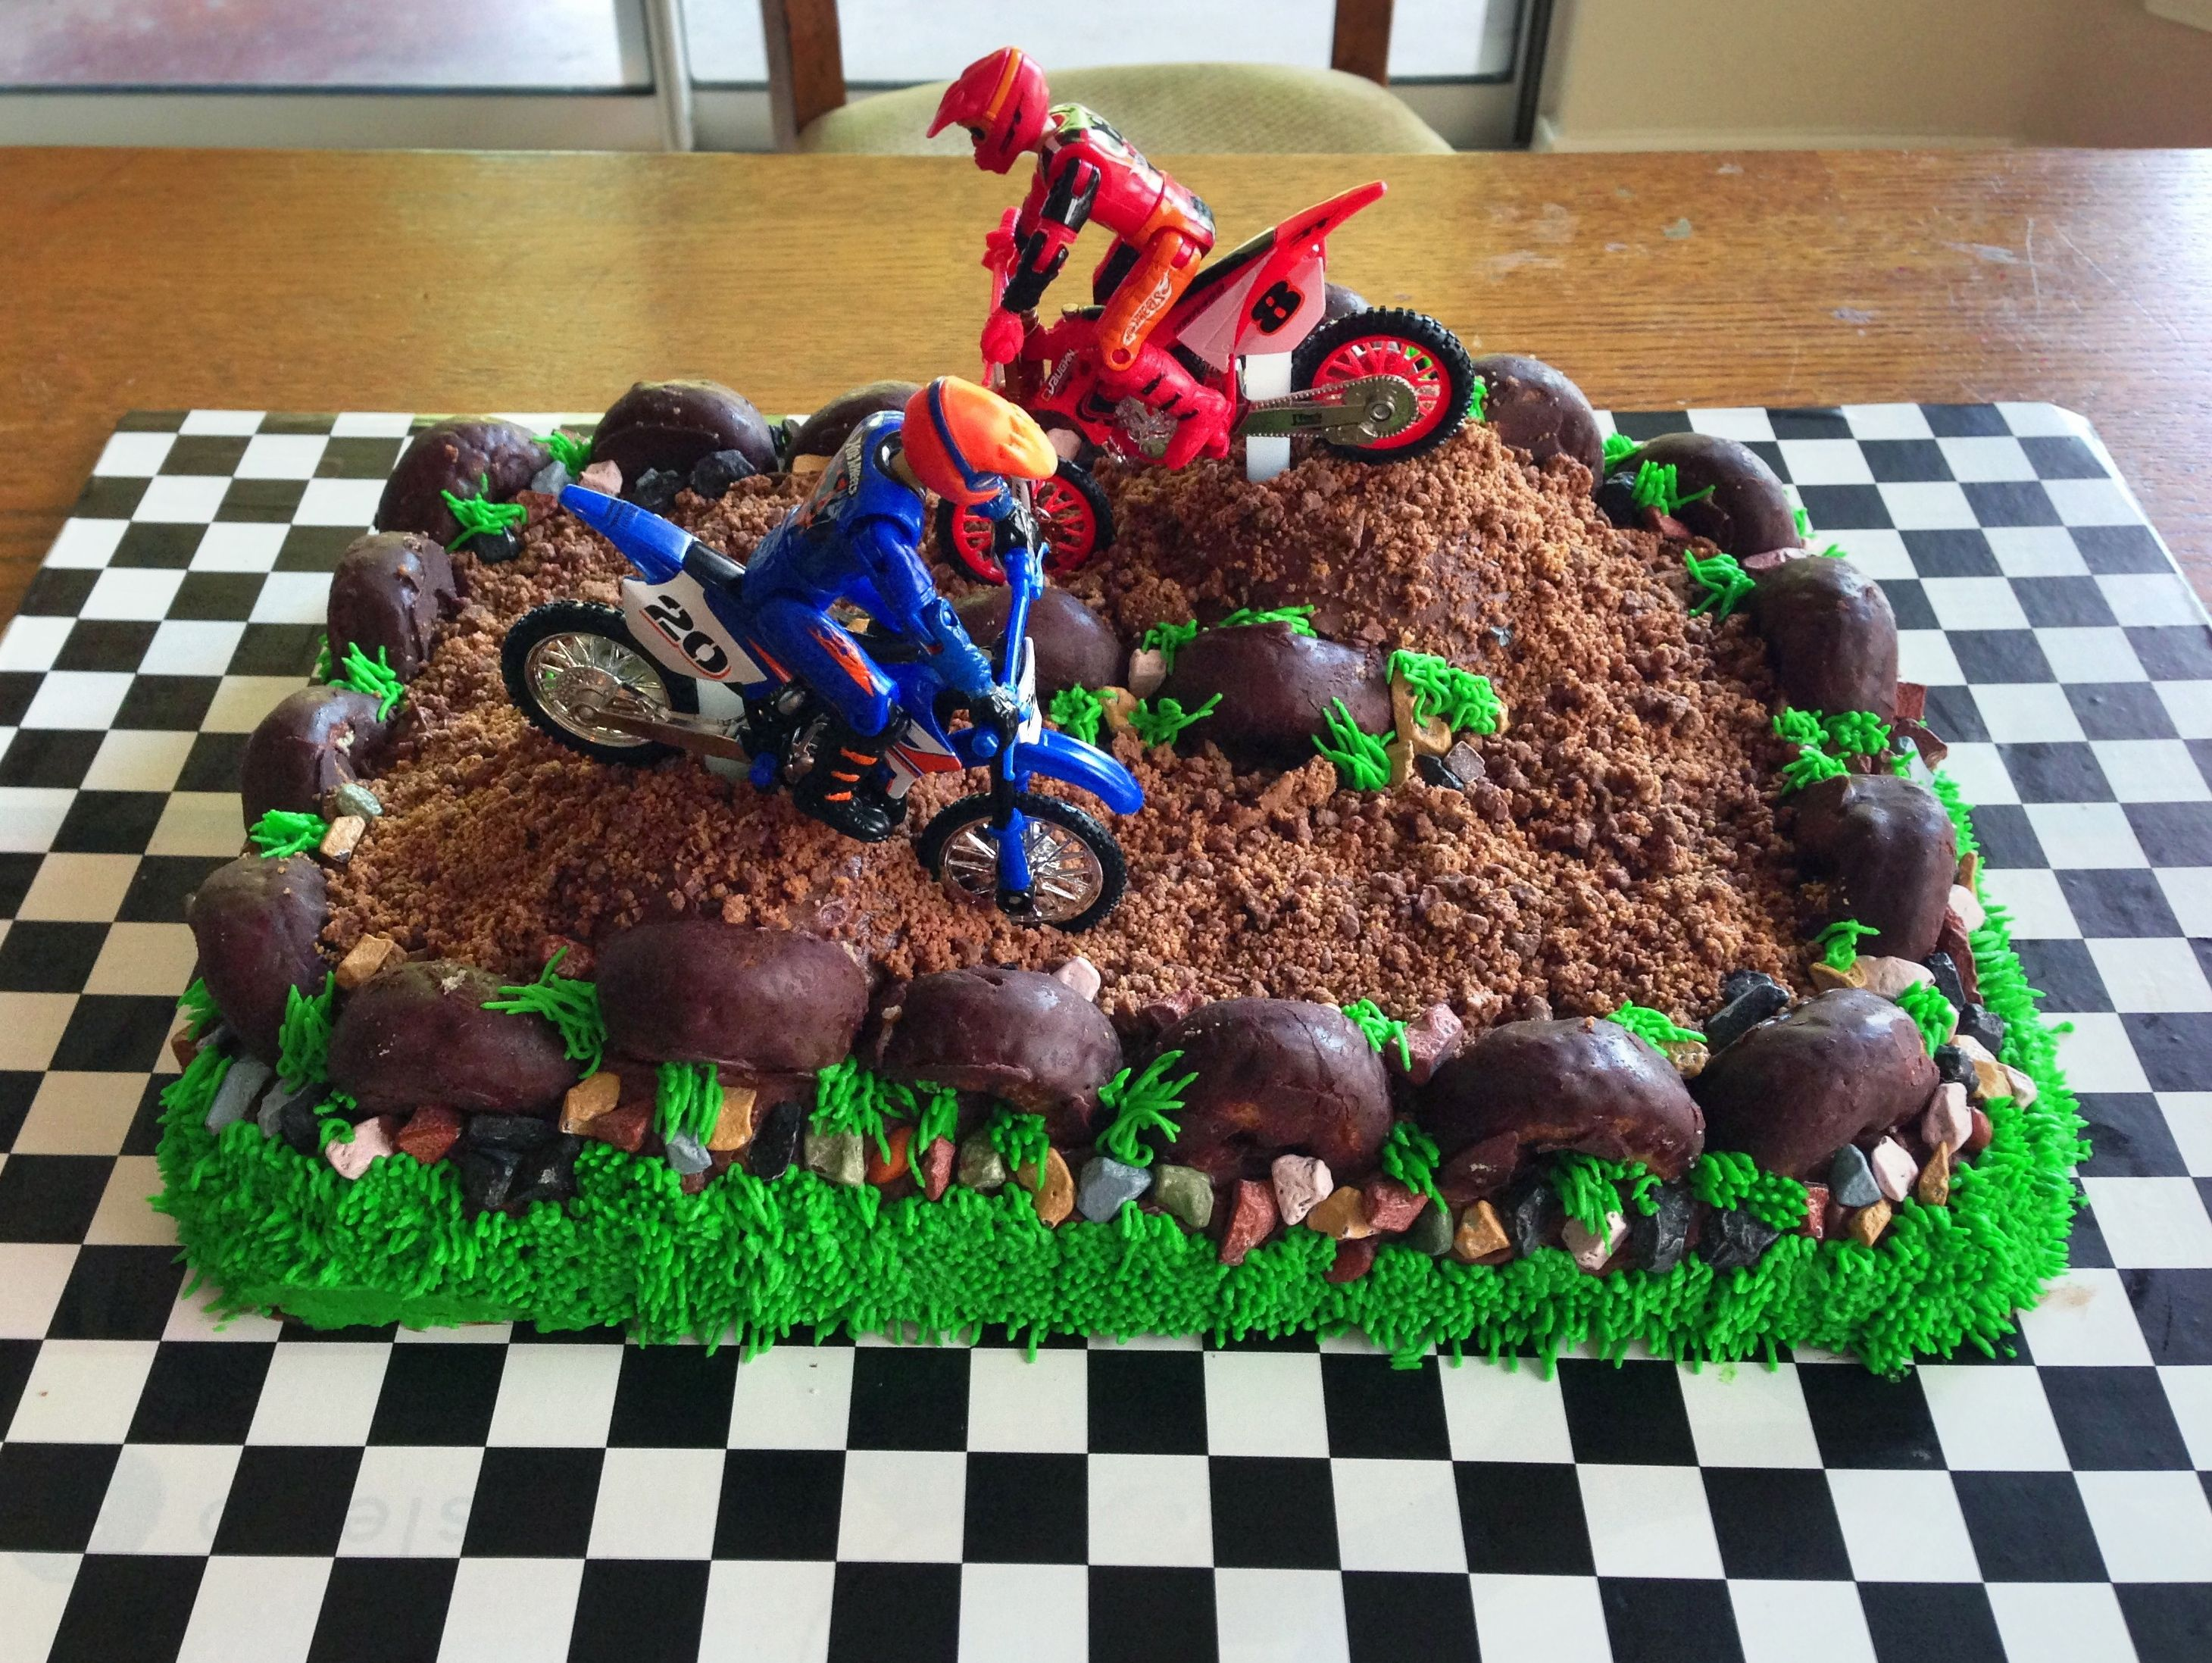 Dirt Bike Cake For My 4 Year Old I Used A 11x15 Casserole